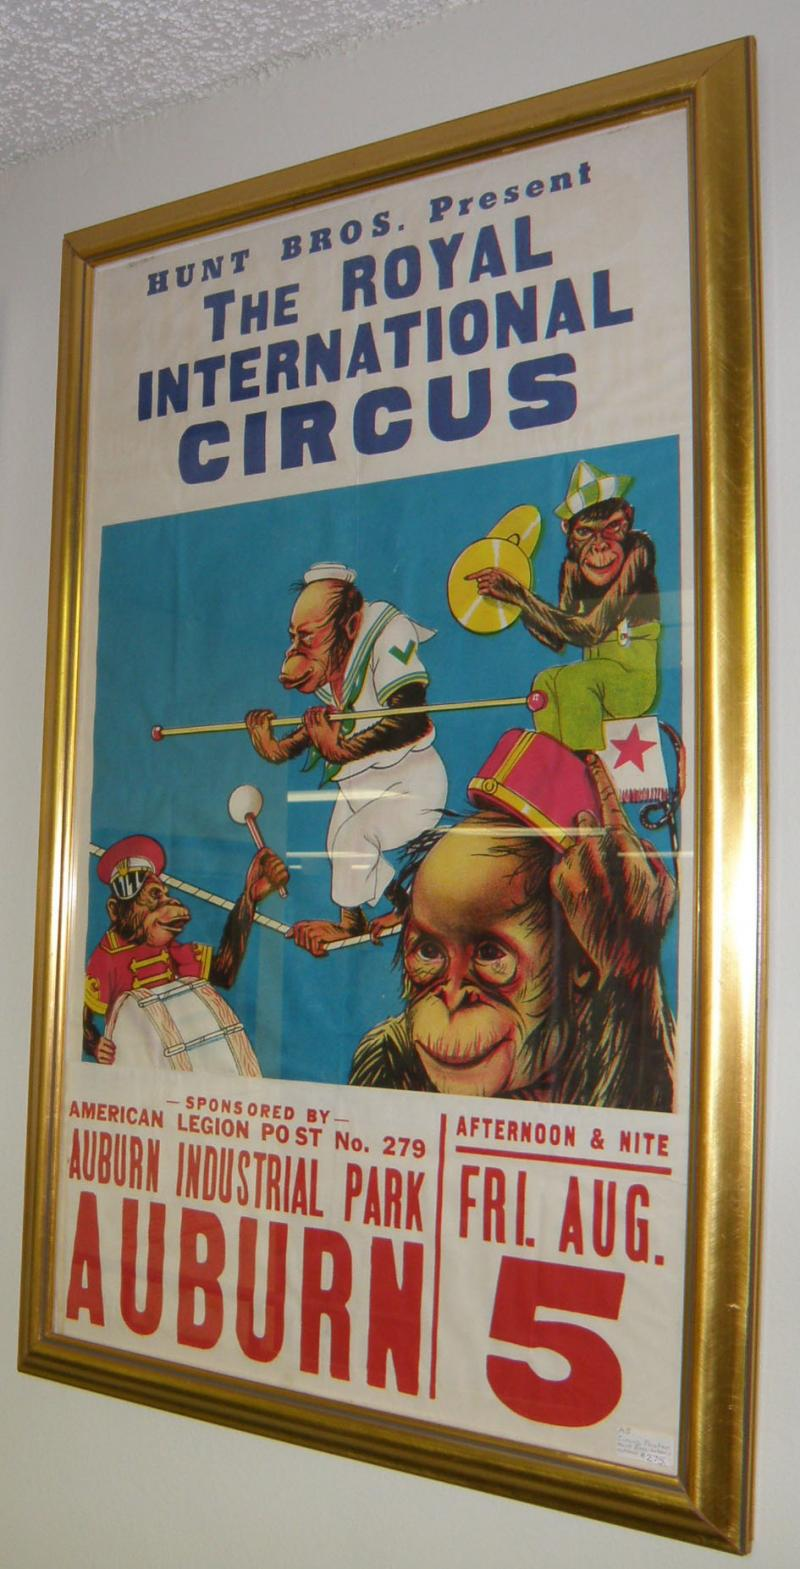 Circus Poster Hunt Bros., International